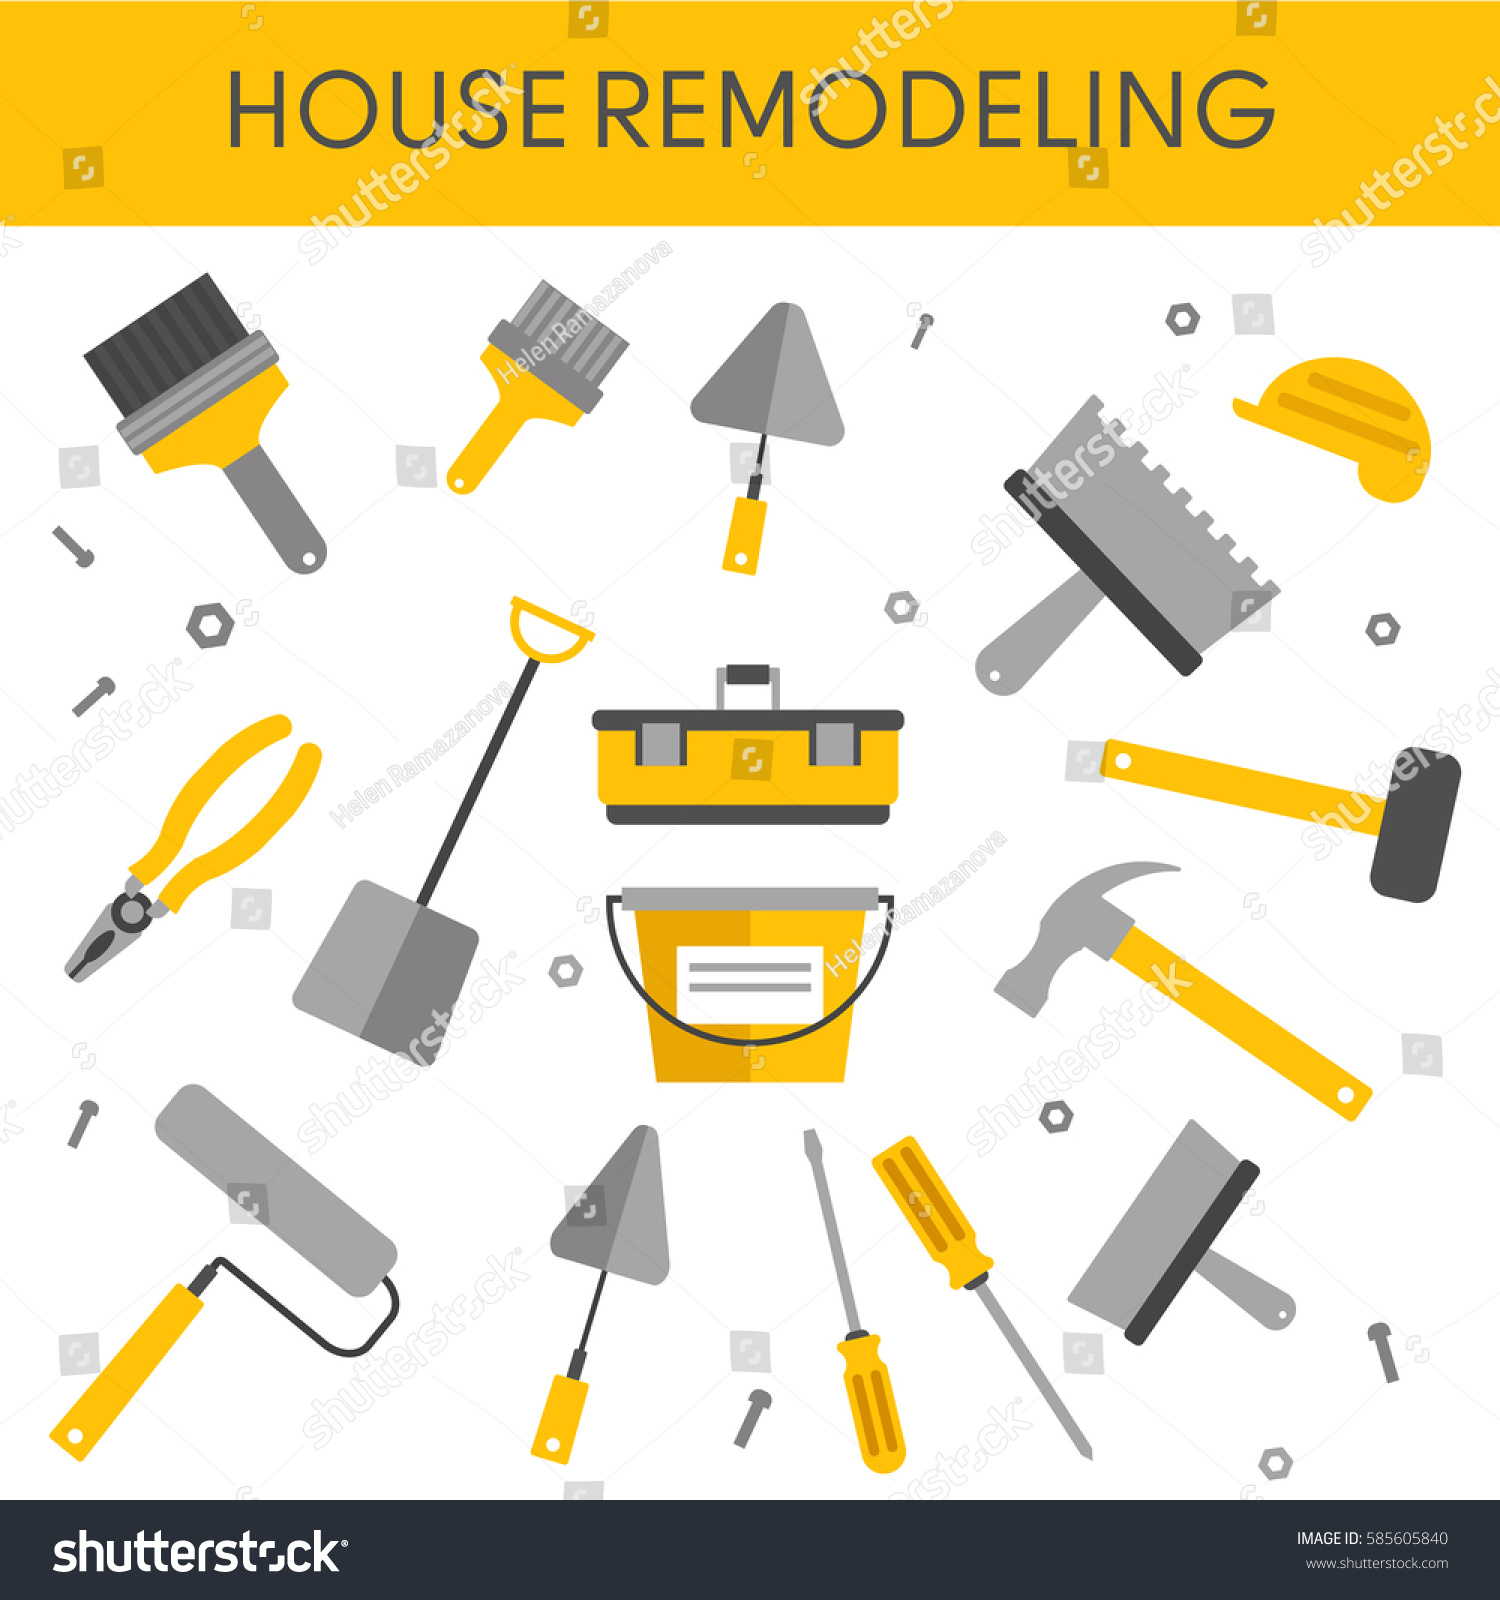 House remodel banner hand tools home stock vector for House remodeling tools